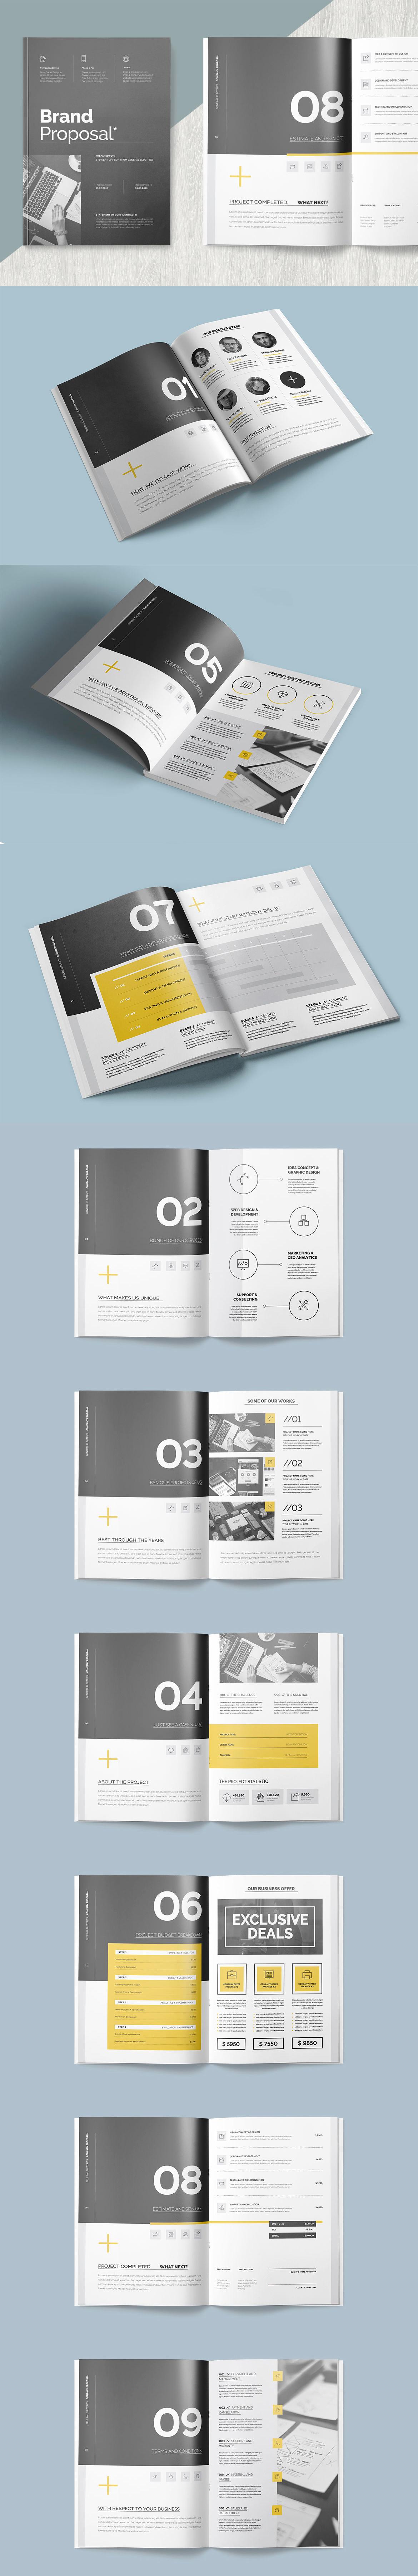 Clean and Professional Proposal 20 Pages Template InDesign INDD ...